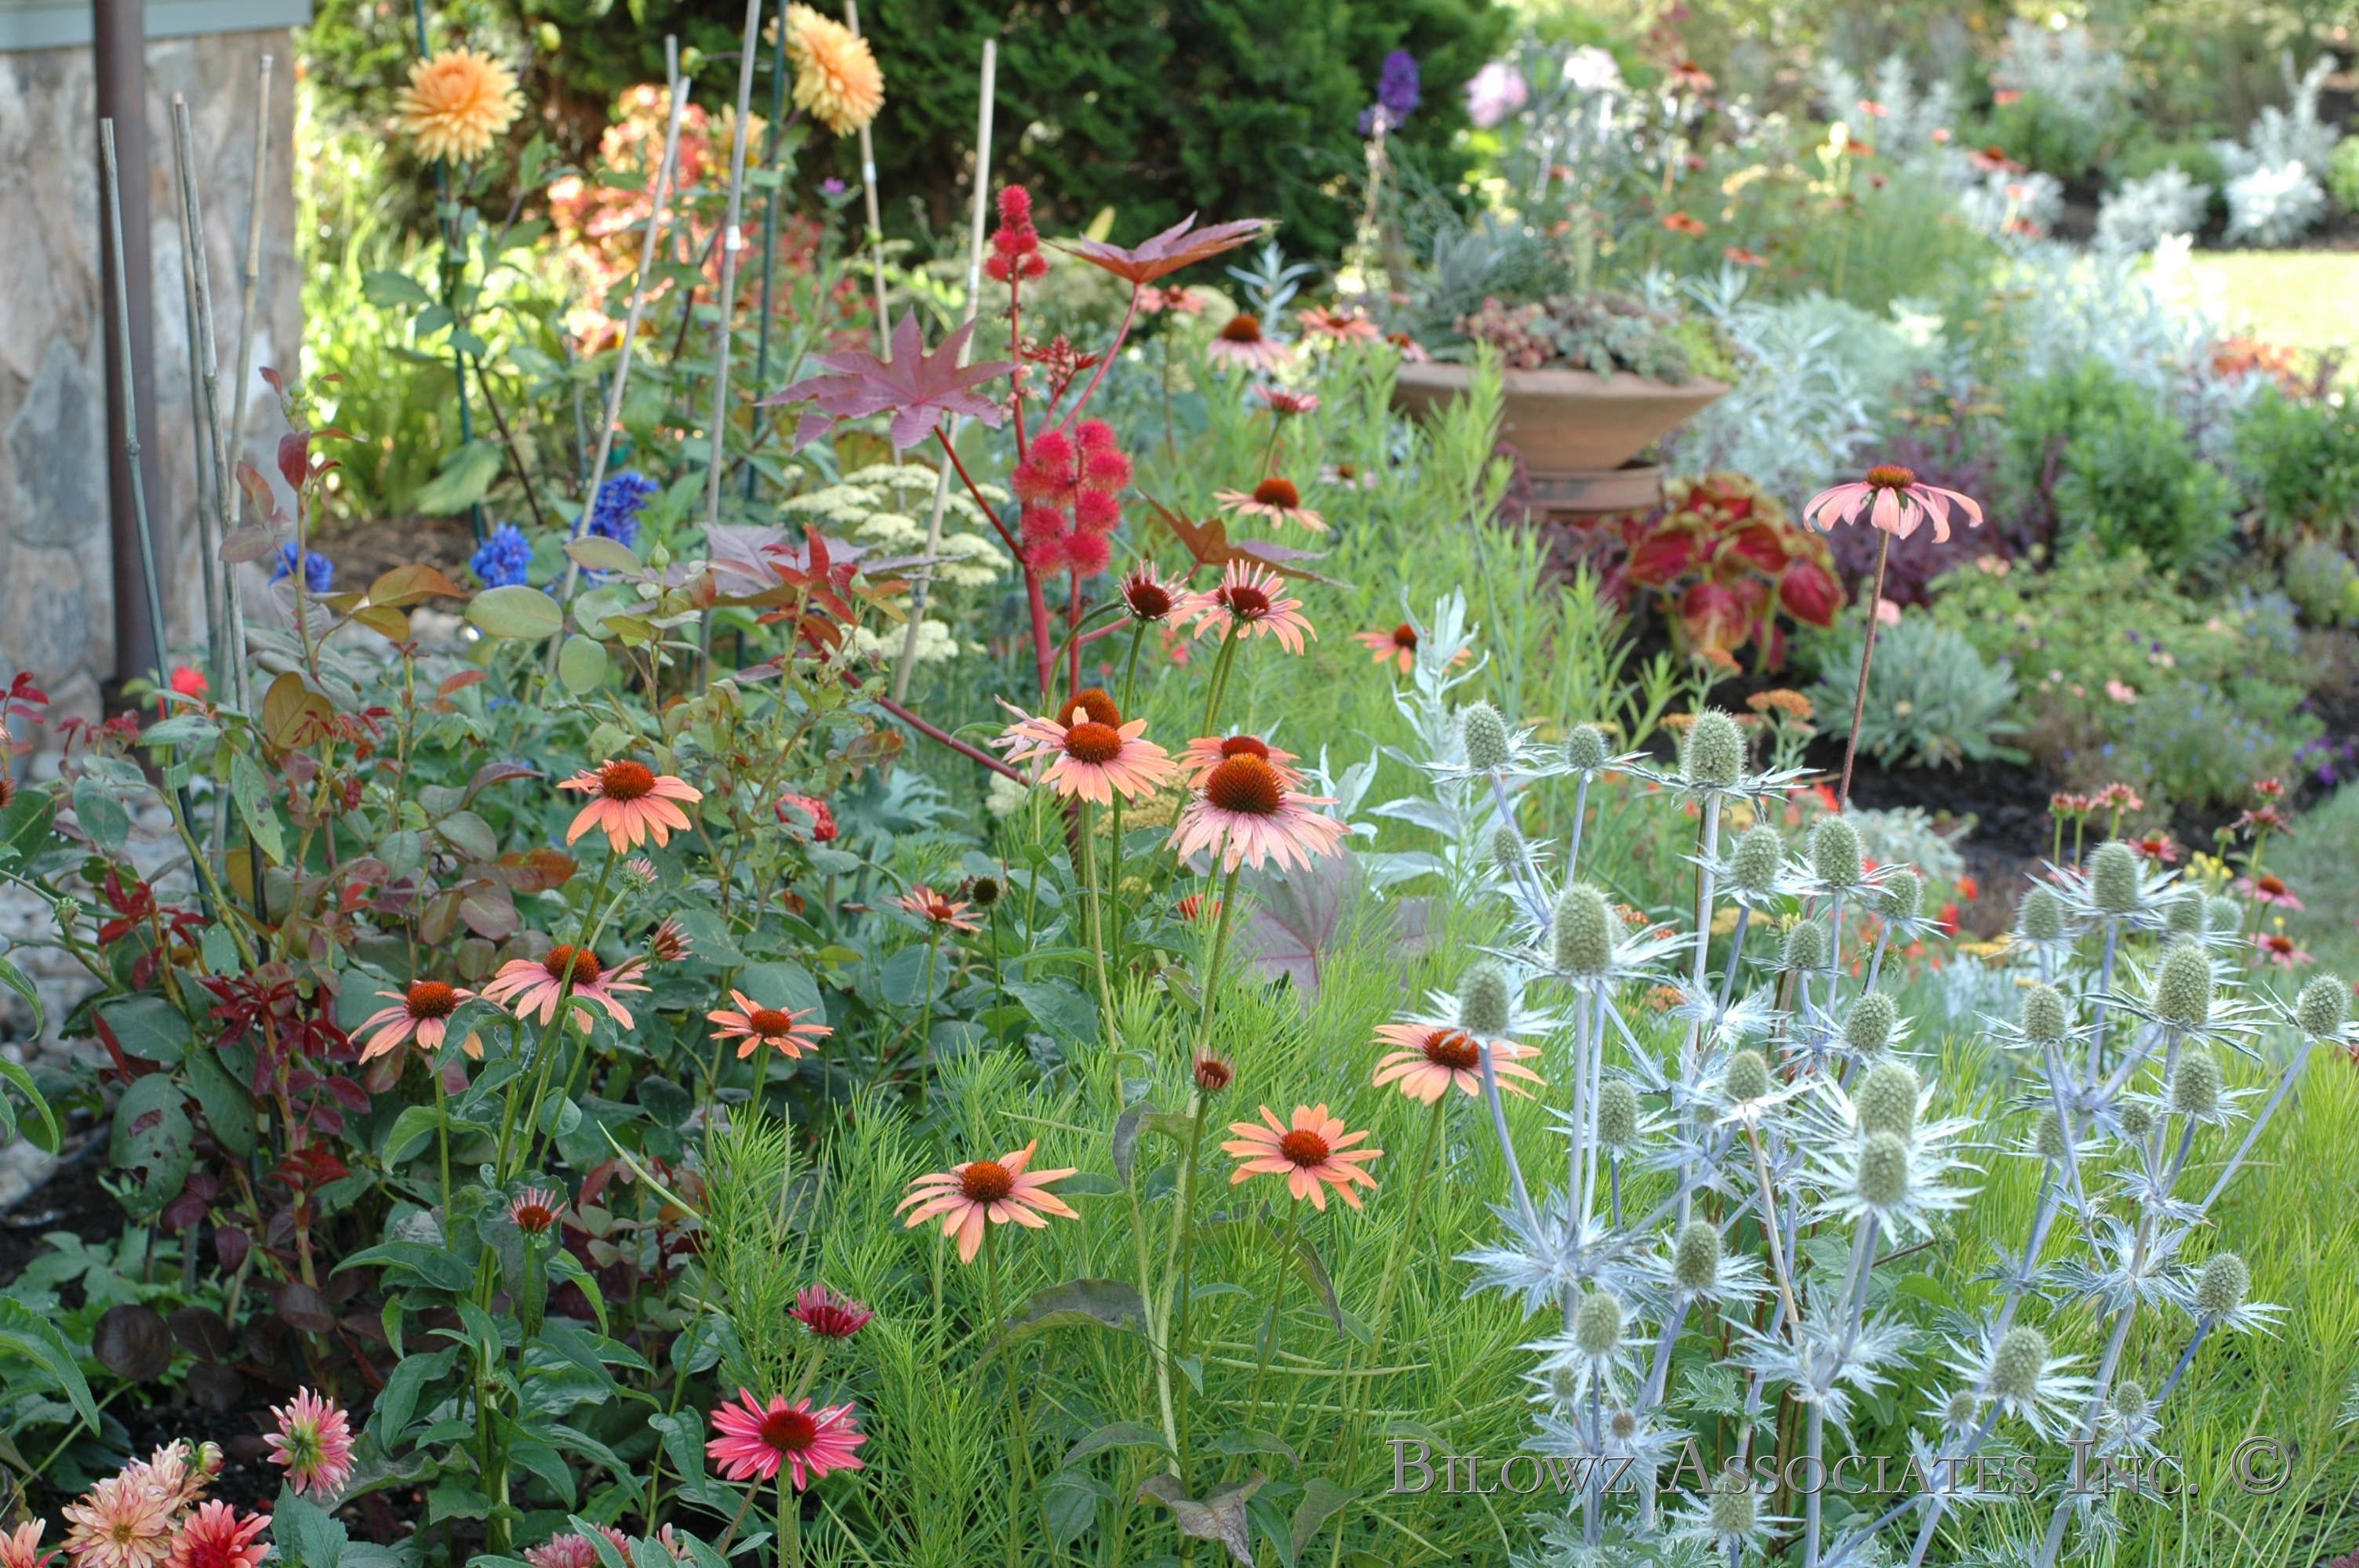 A Perennial Border popping with color - Image and design by Bilowz Associates Inc. Copyright.jpg